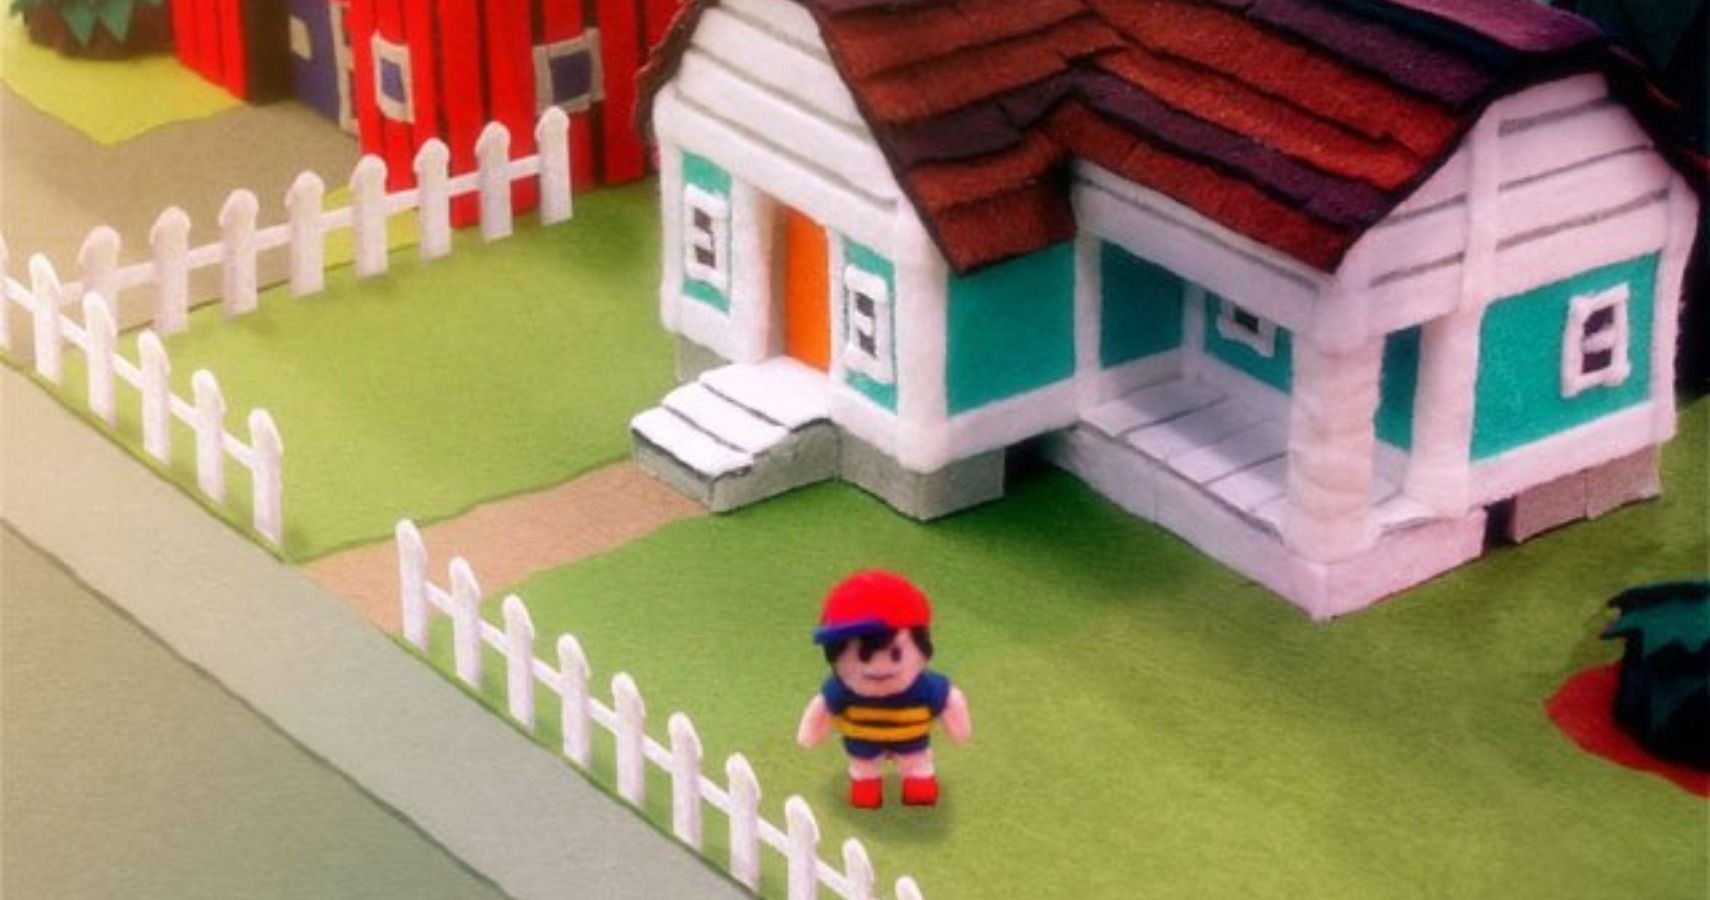 Concept Art For An EarthBound Game On The GameCube Has Been Revealed